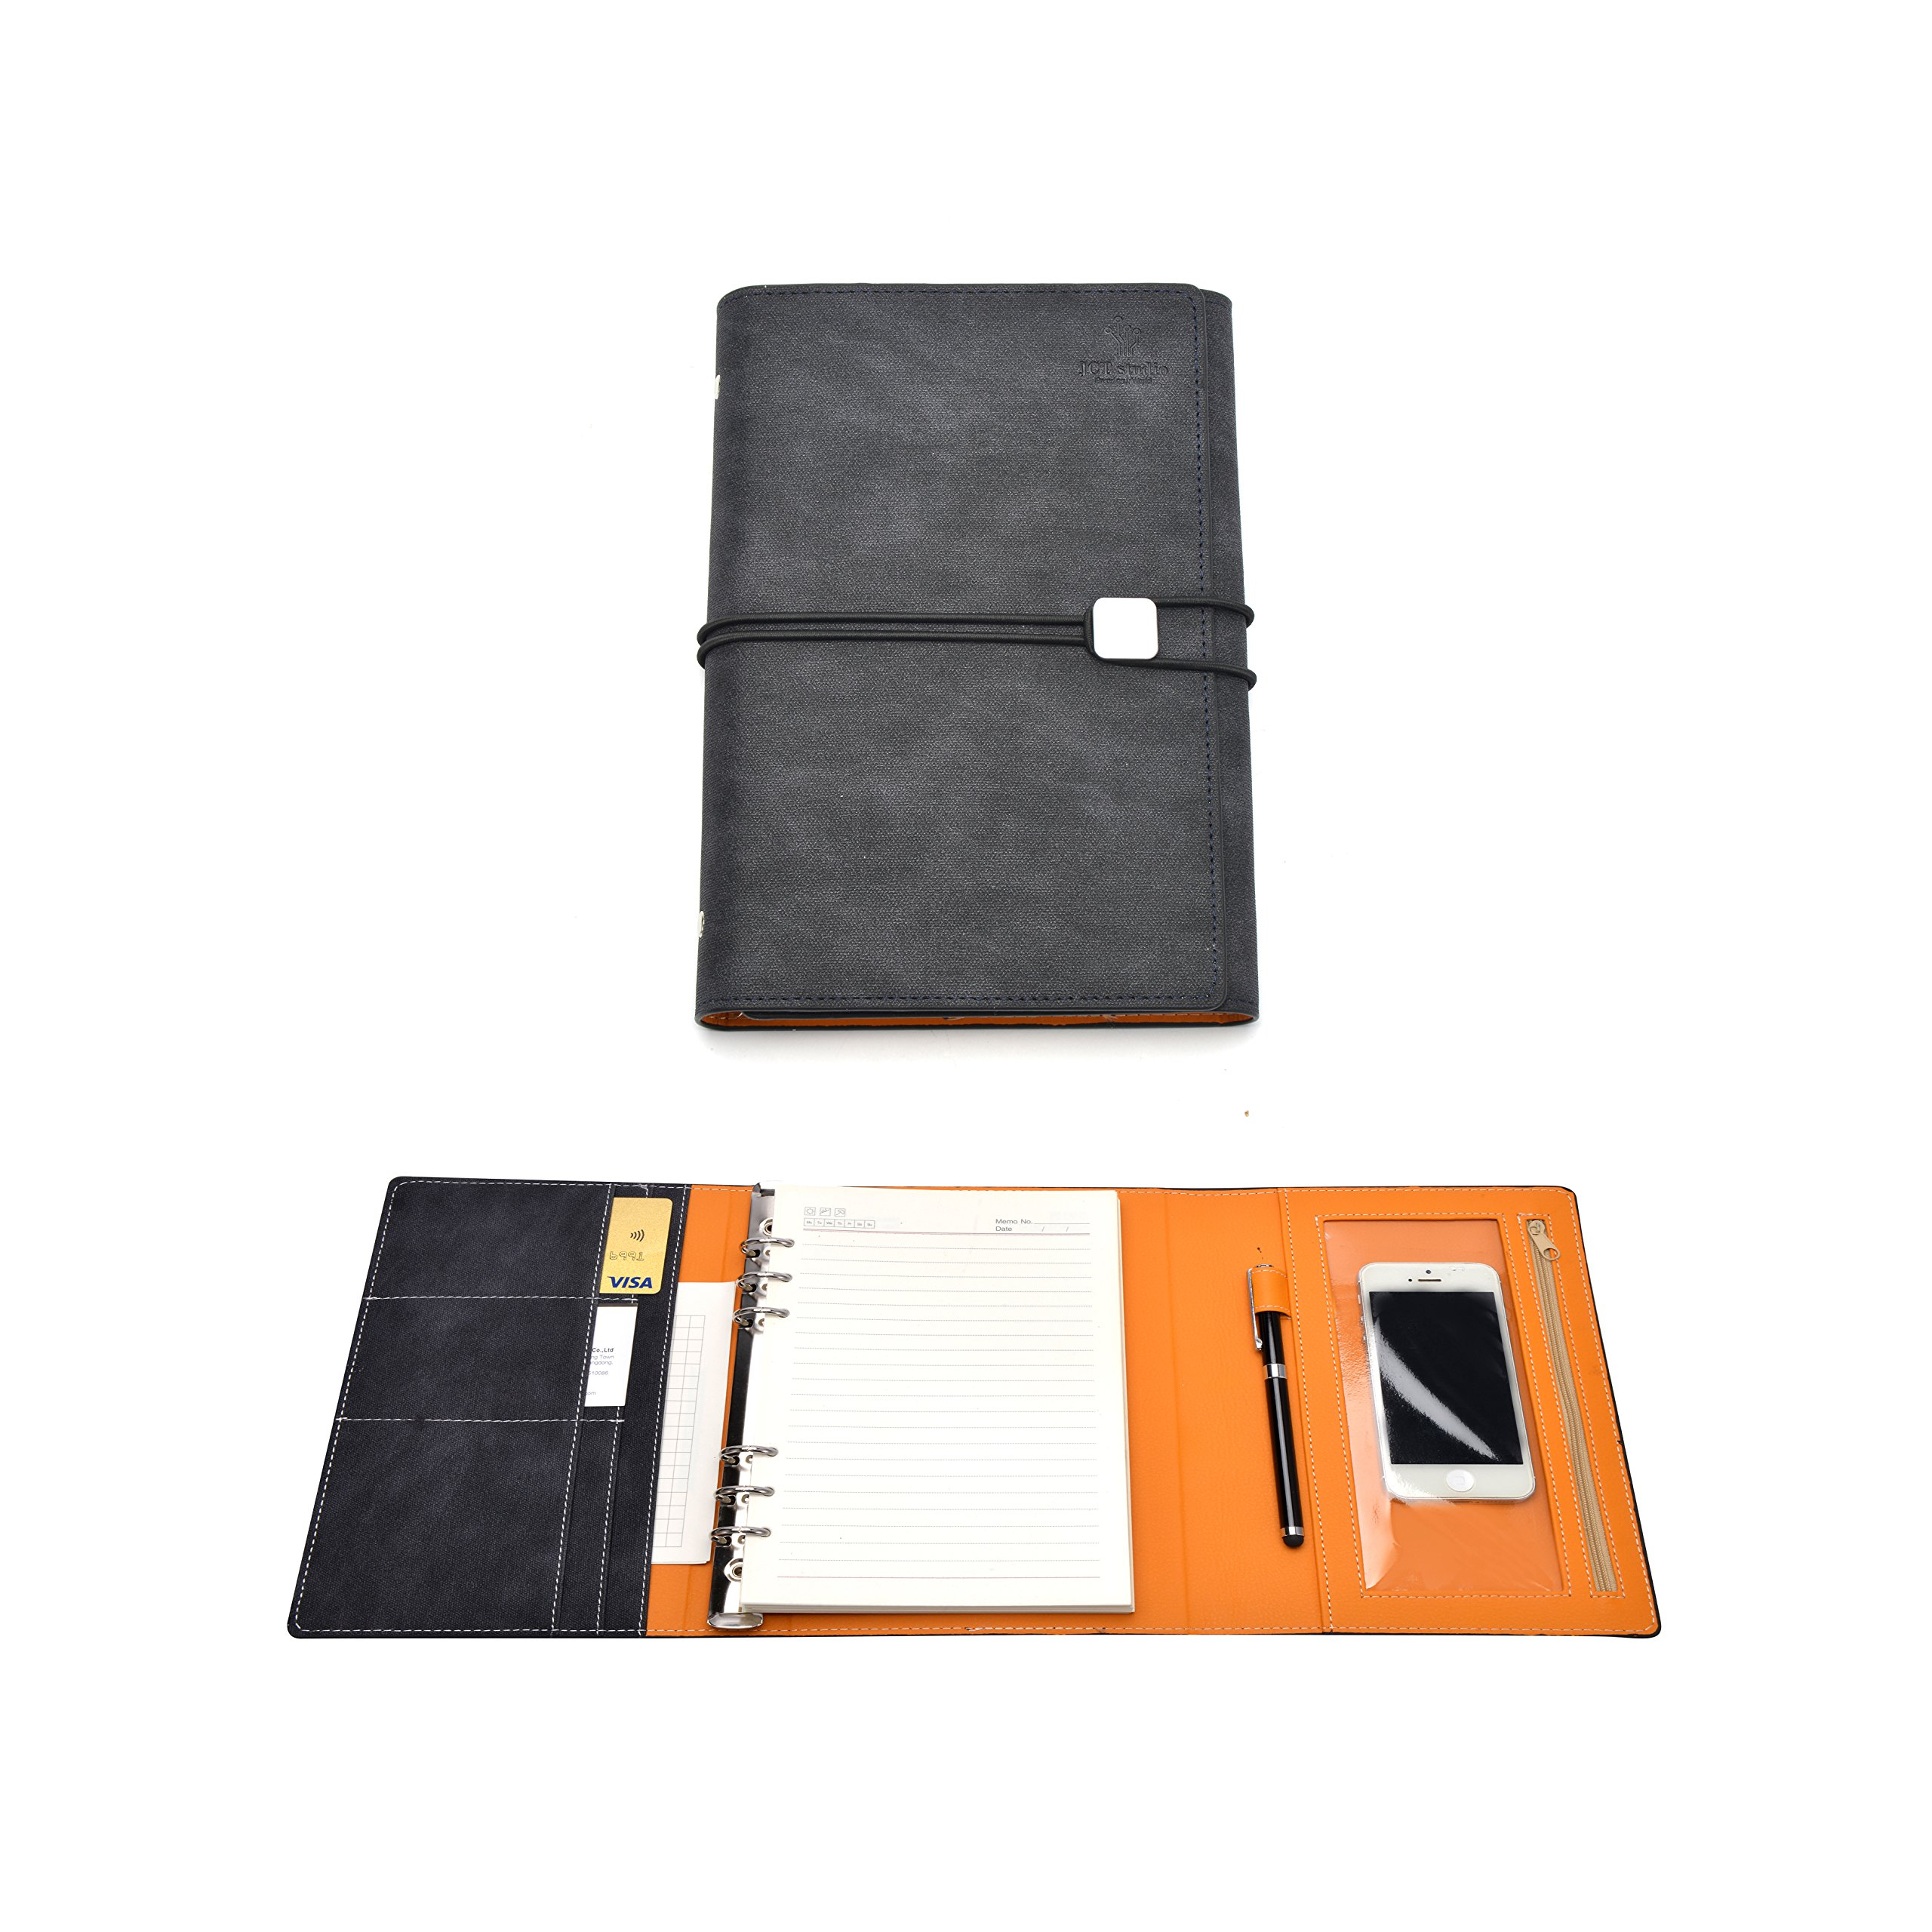 JCT Hardcover Organizer Notebook - Leather Journal with Pen Holder + Phone Pocket + Business Card Holder + Binders, Bonus Touch Screen Pen & A5 6 Hole Resume Papers & Gift Card & Lovely Sticker